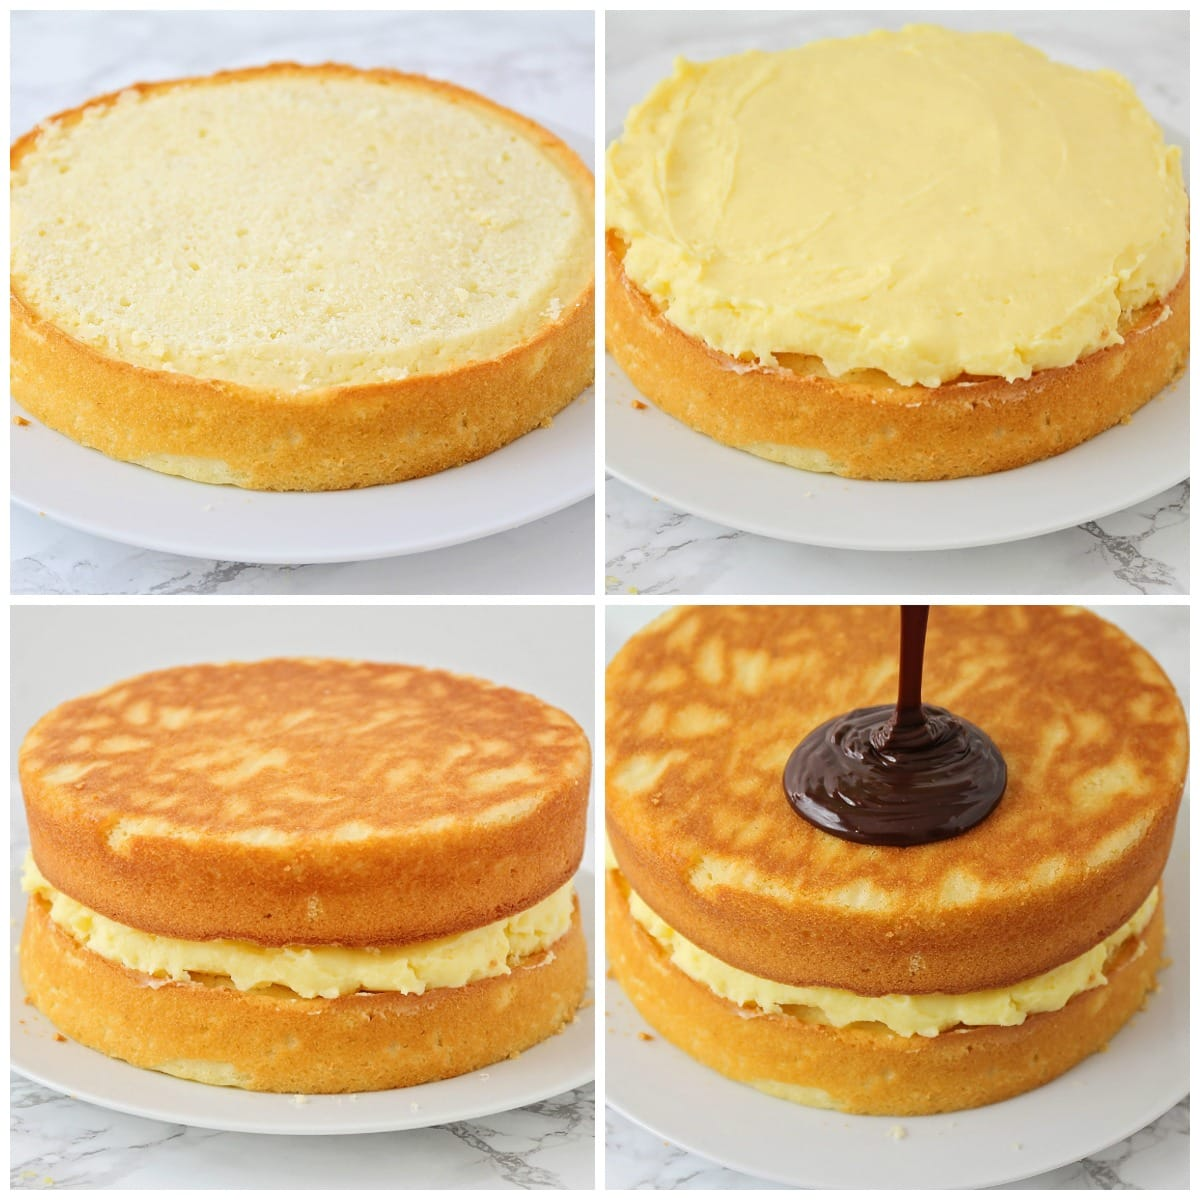 How to make Boston cream pie pics